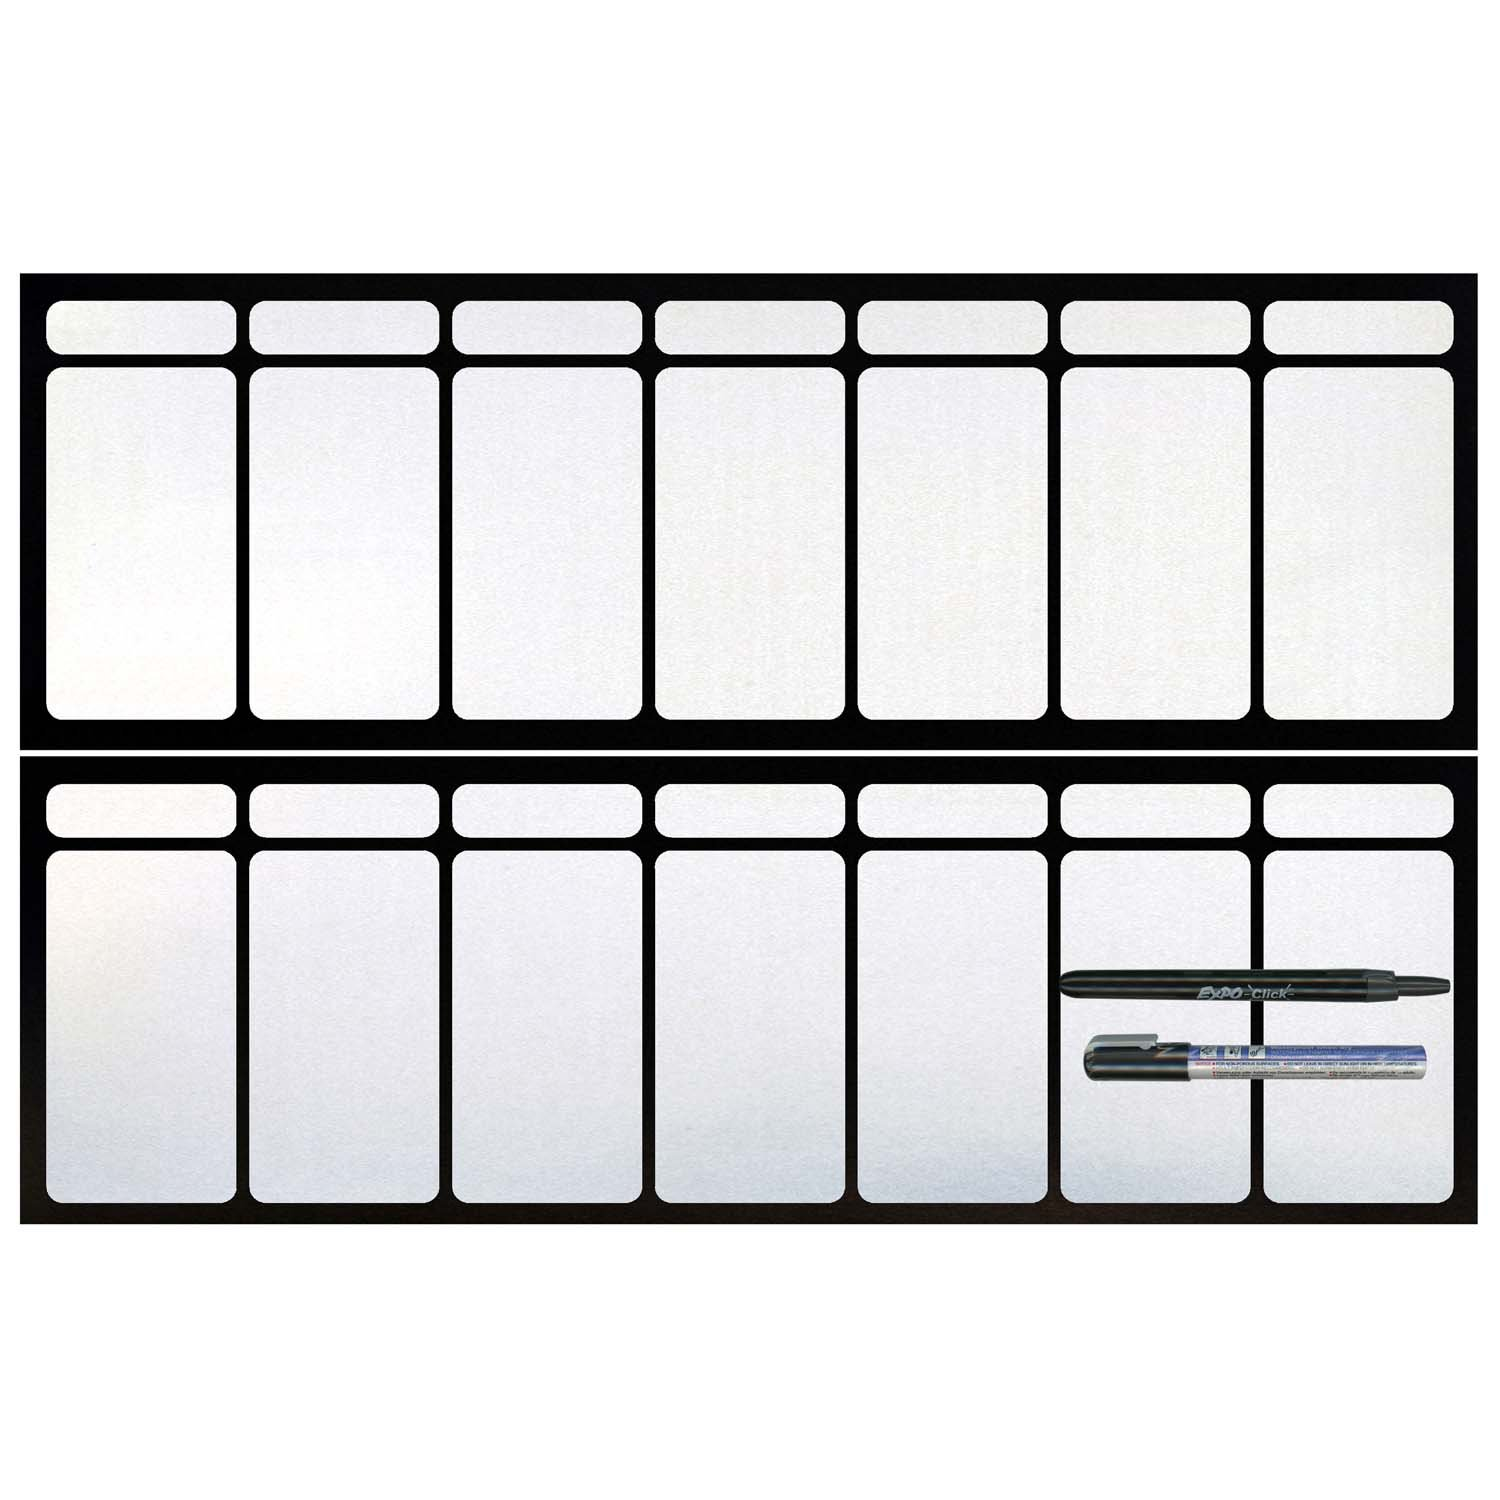 Cohas Magnetic Backed Large 7 Day Calendar includes Black Markers, Whiteboard, 2 Weeks